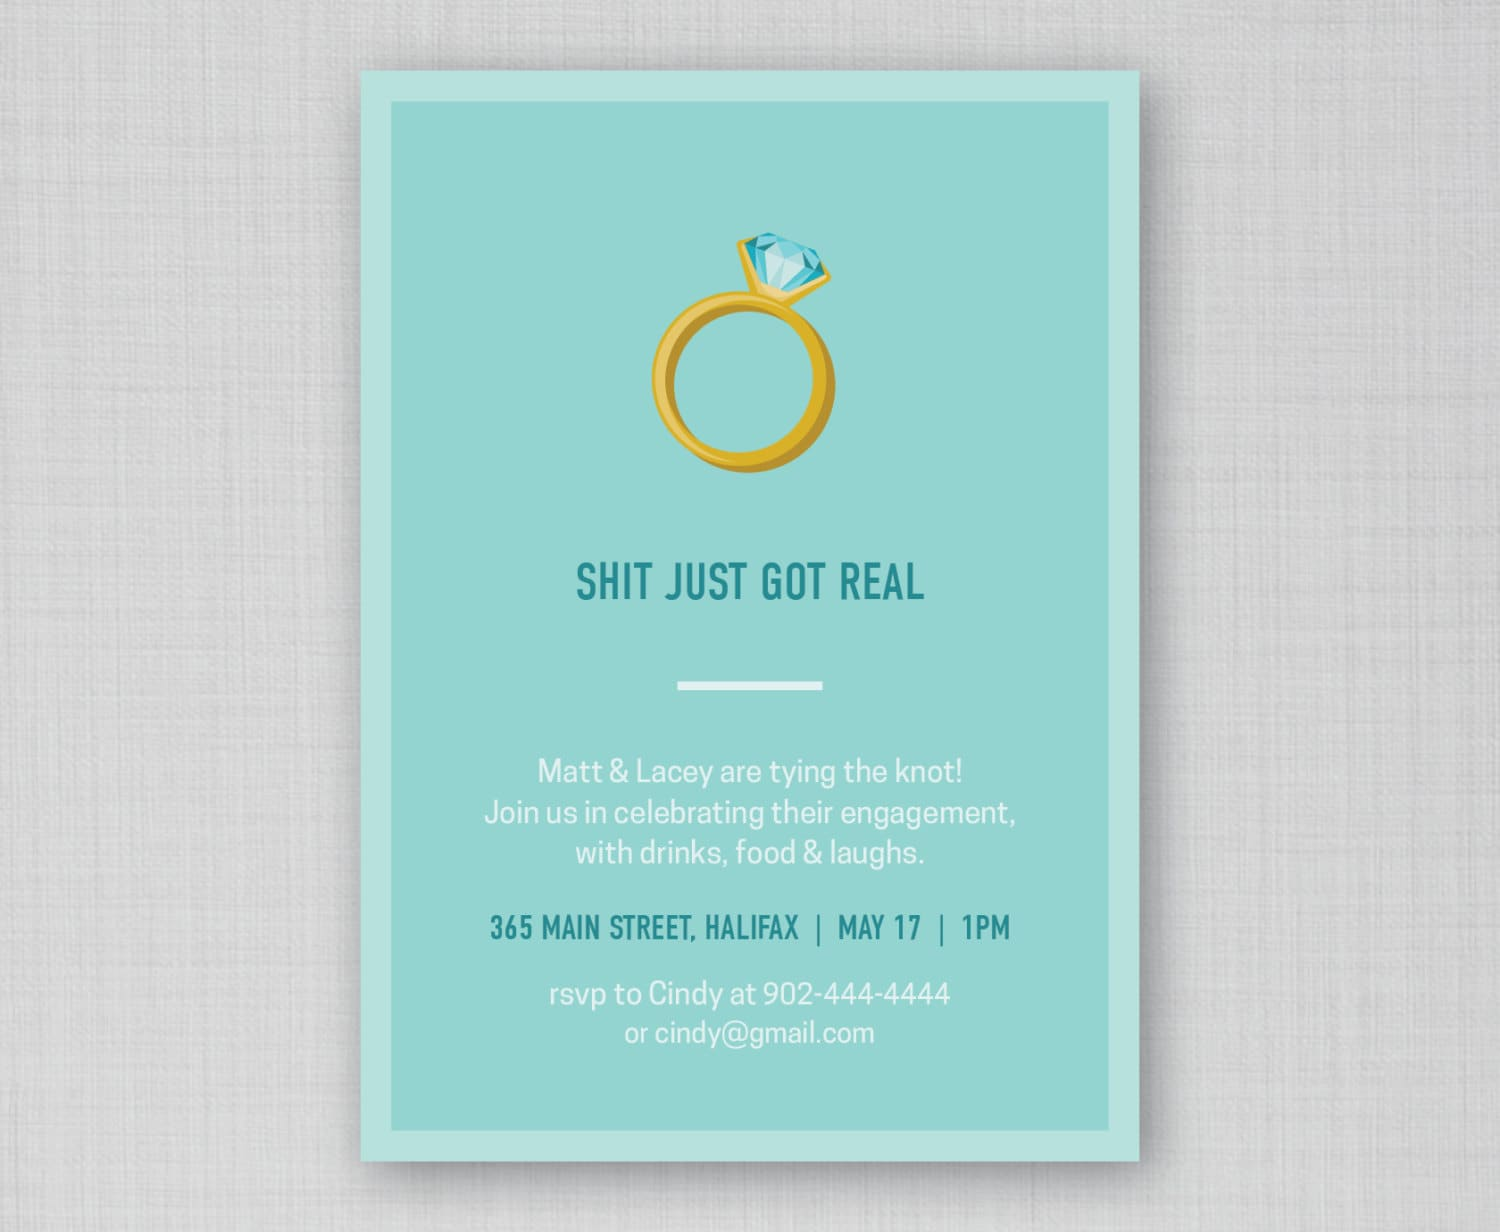 Funny Engagement Party Invitation Funny Bridal Shower – Creative Engagement Party Invitations